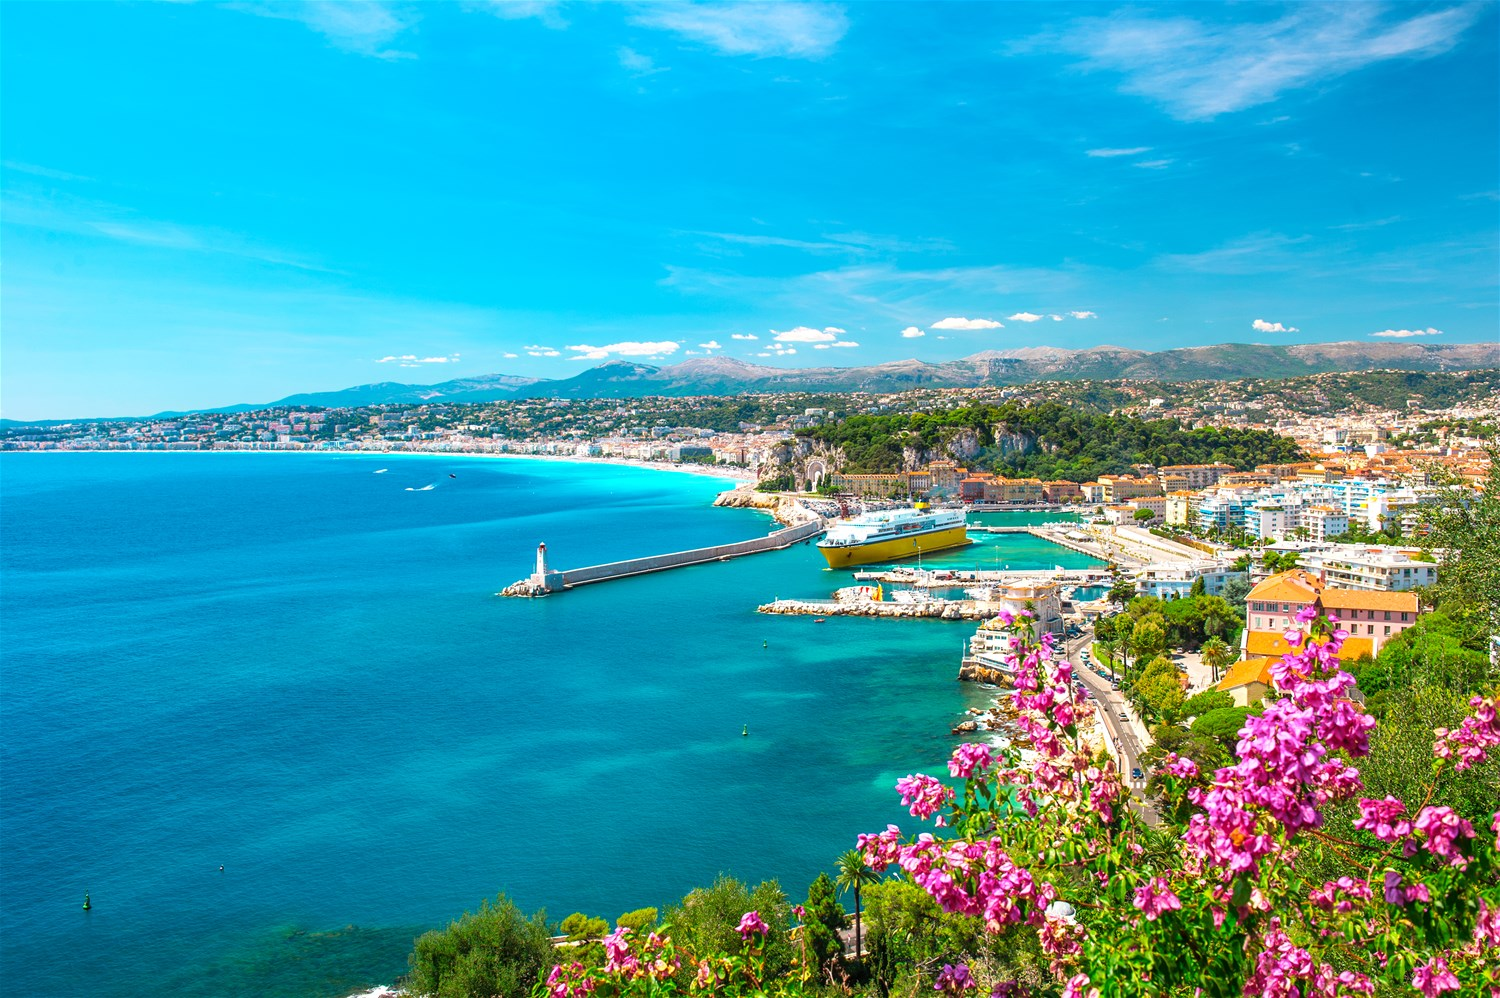 Top 10 Things to Do in Nice and the Cote d'Azur